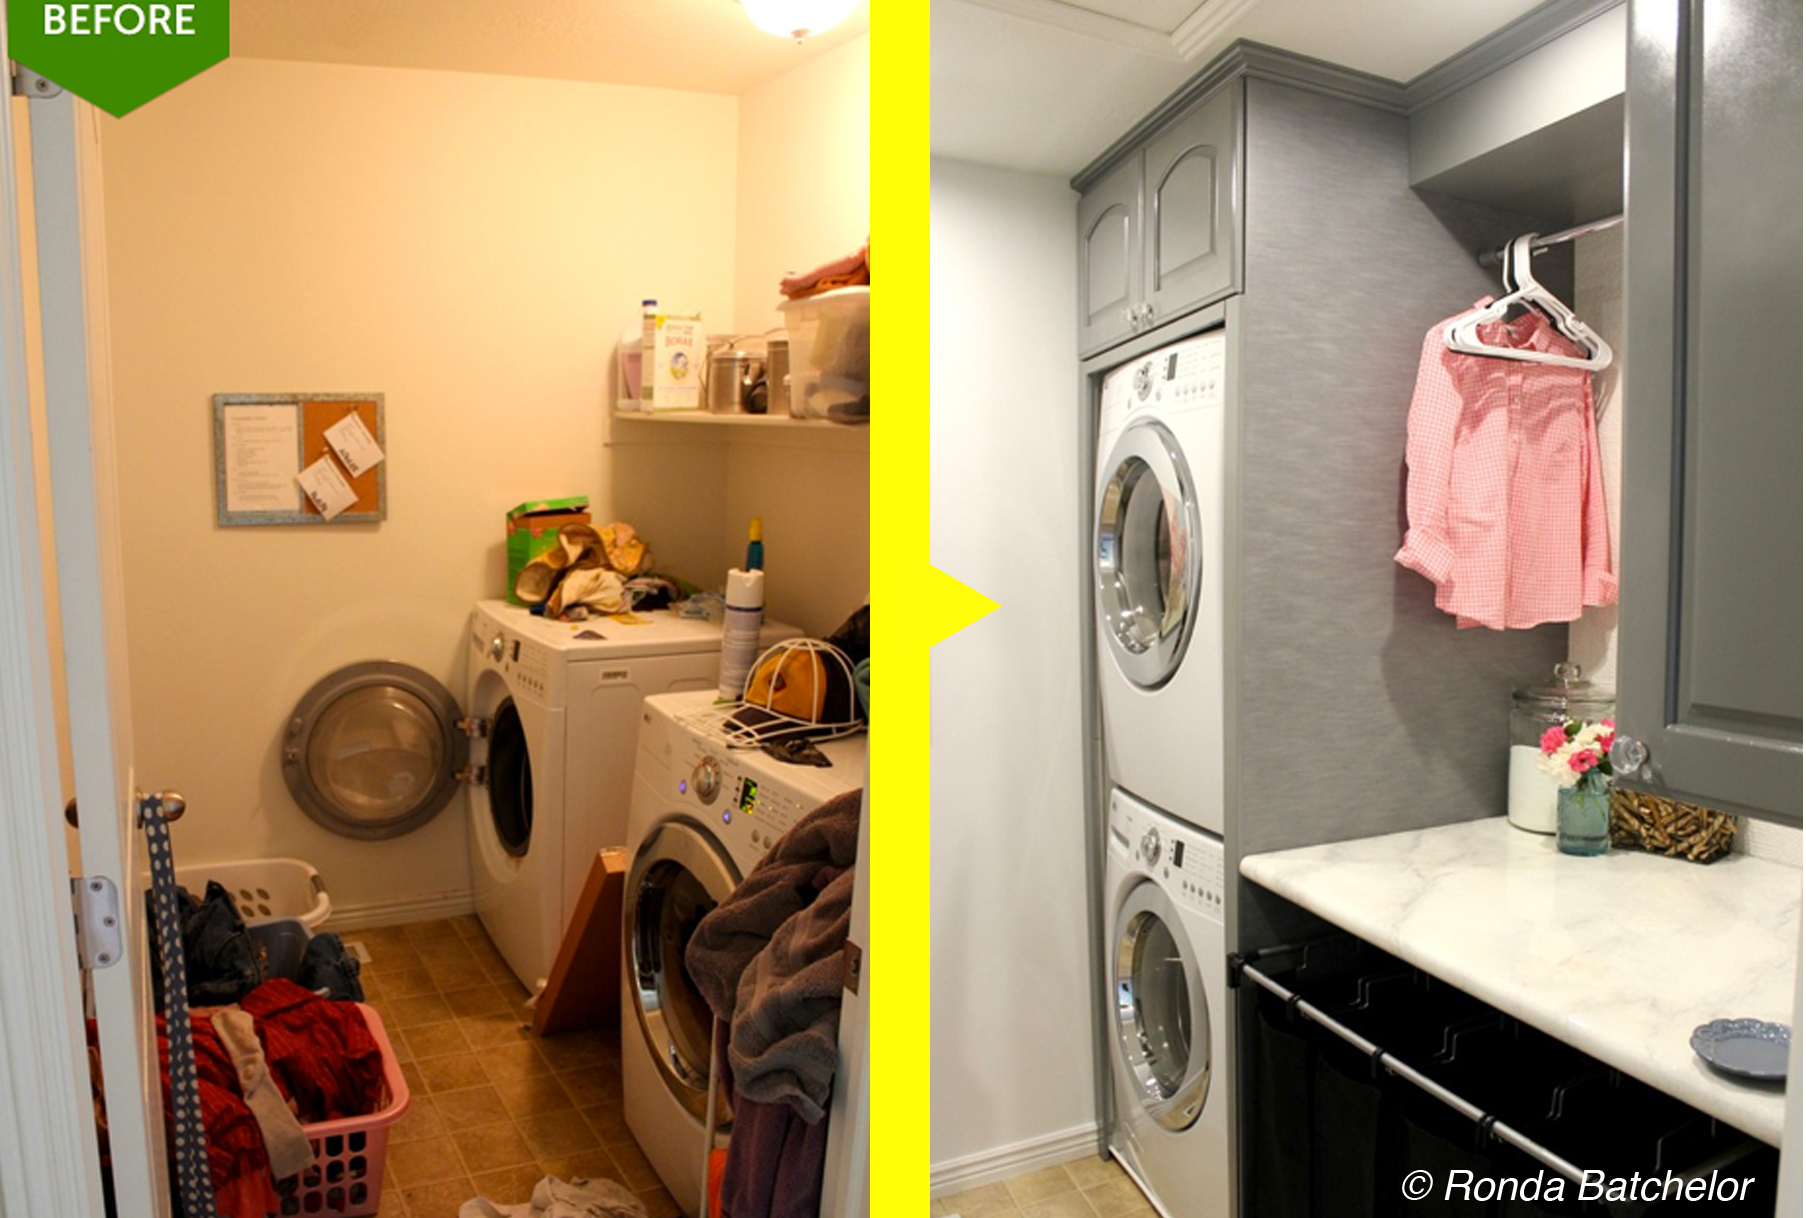 How A Small Laundry Room Was Transformed Into A Sleek Ultra-Efficient Space